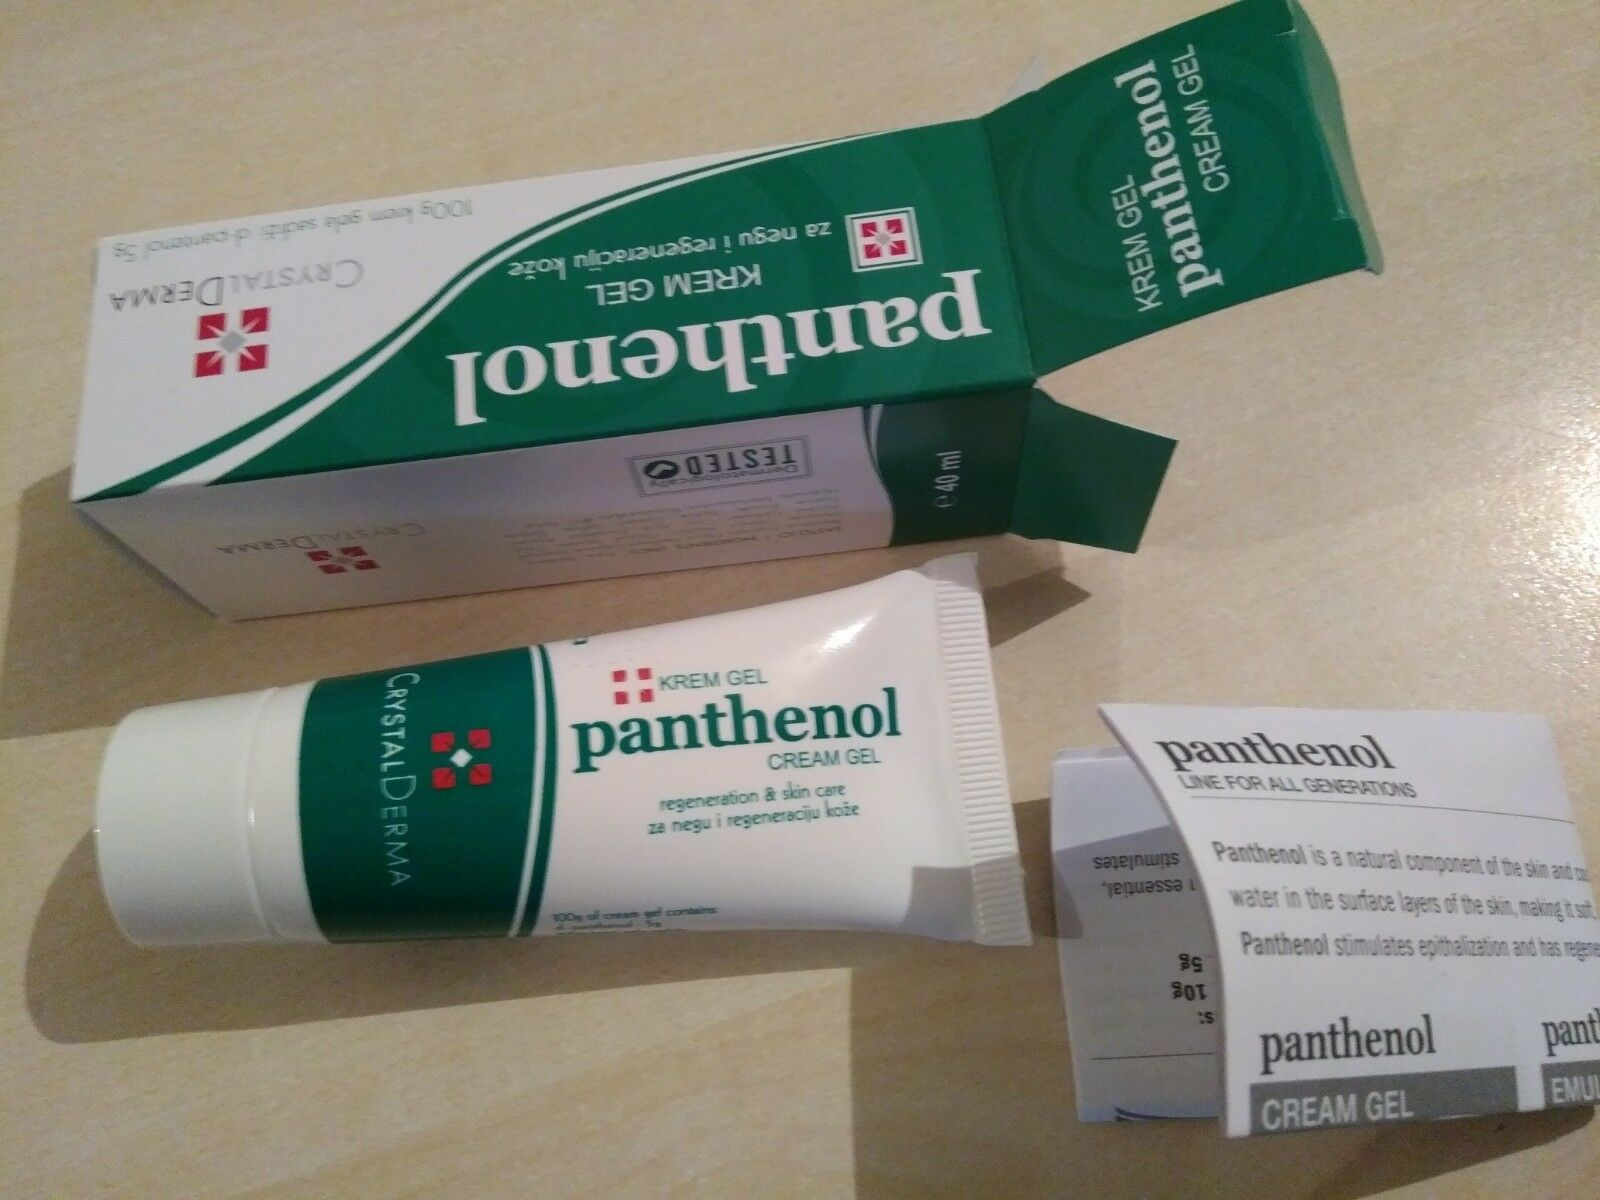 The drug Panthenol (ointment) 33